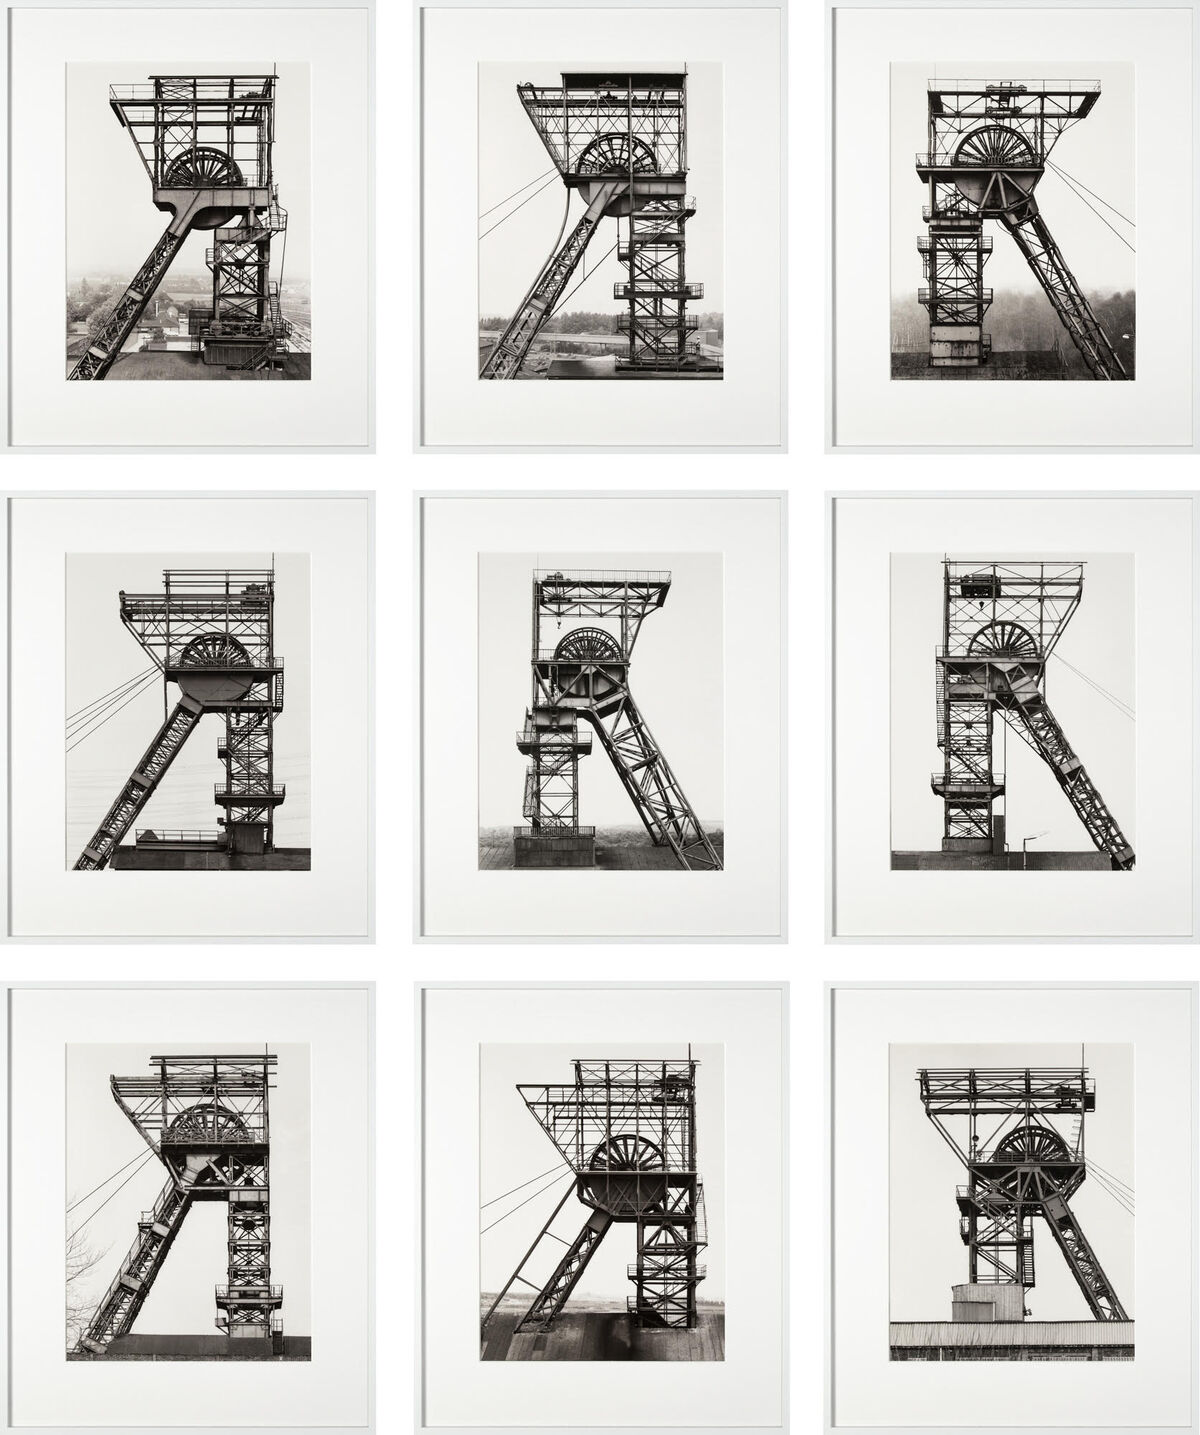 Bernd & Hilla Becher, Winding Towers, 1967-82. Courtesy of Galleri K and TEFAF Maastricht.